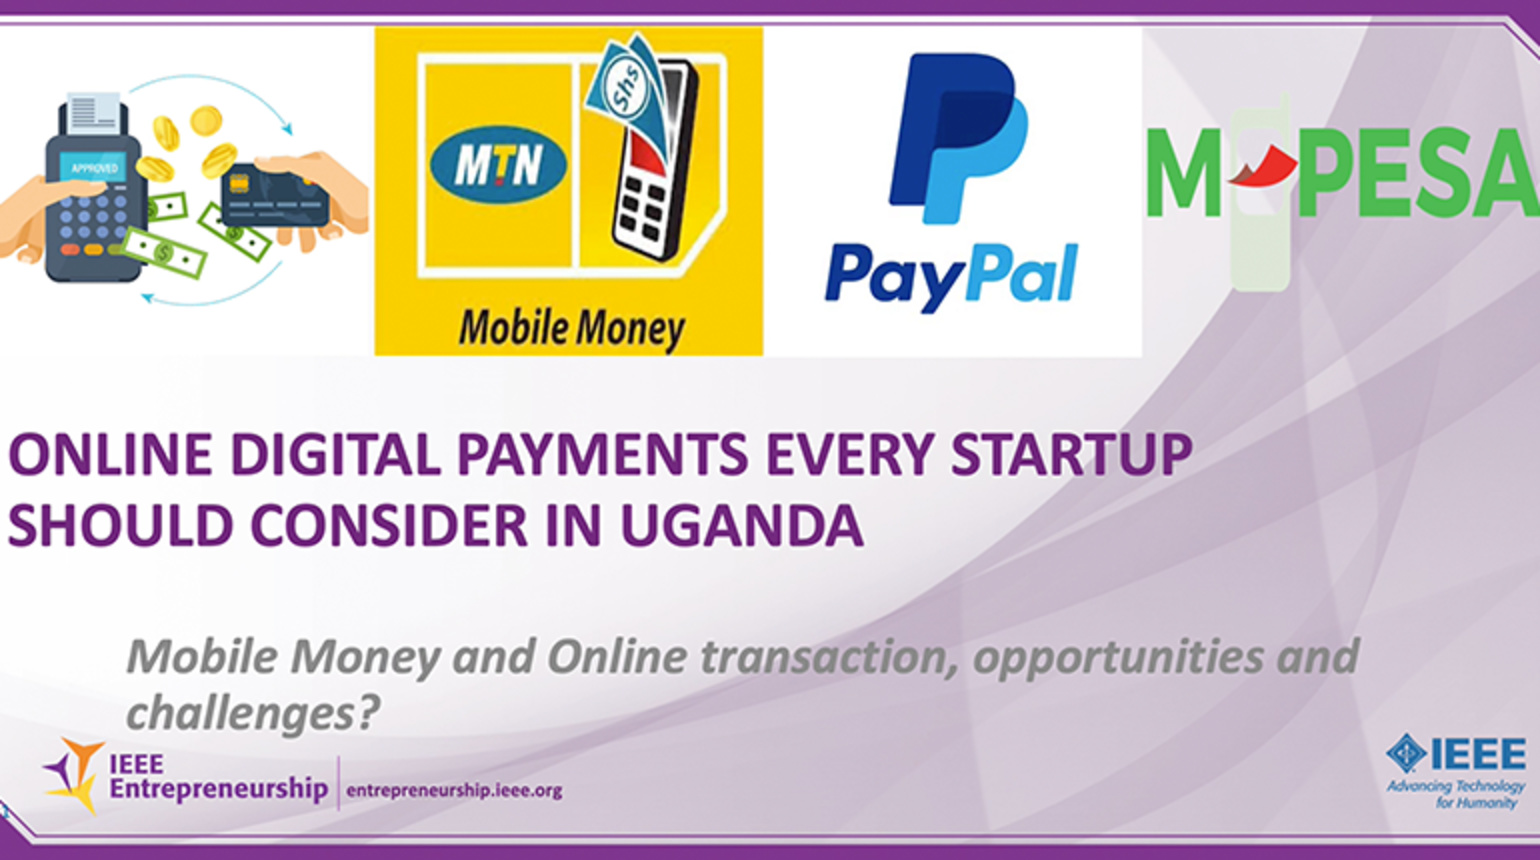 IST-Africa Conference | Entrepreneurial Sessions - Online Digital Payments that Every Startup Should Consider